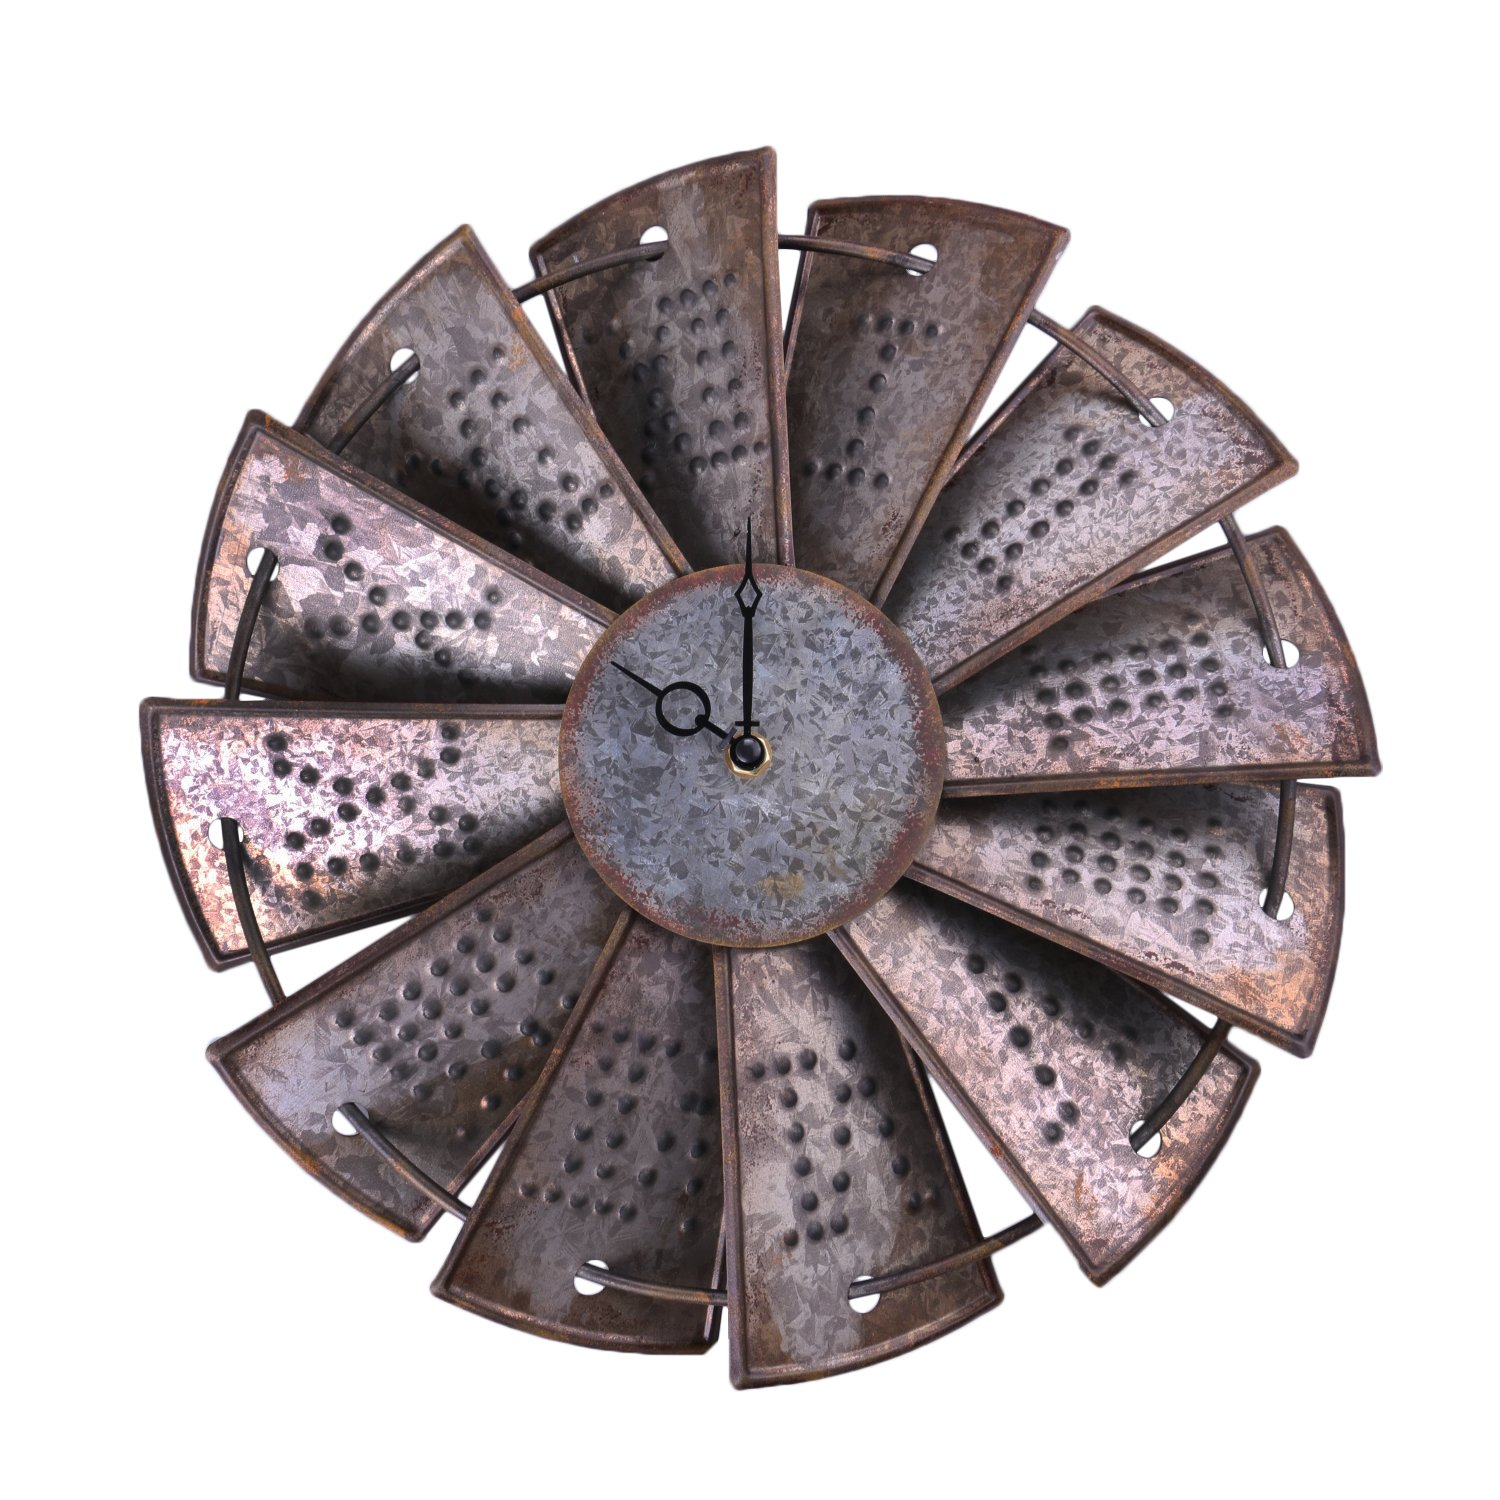 Windmill wall clock images home wall decoration ideas rough country decor rustic industrial metal farm windmill wall rough country decor rustic industrial metal farm amipublicfo Gallery